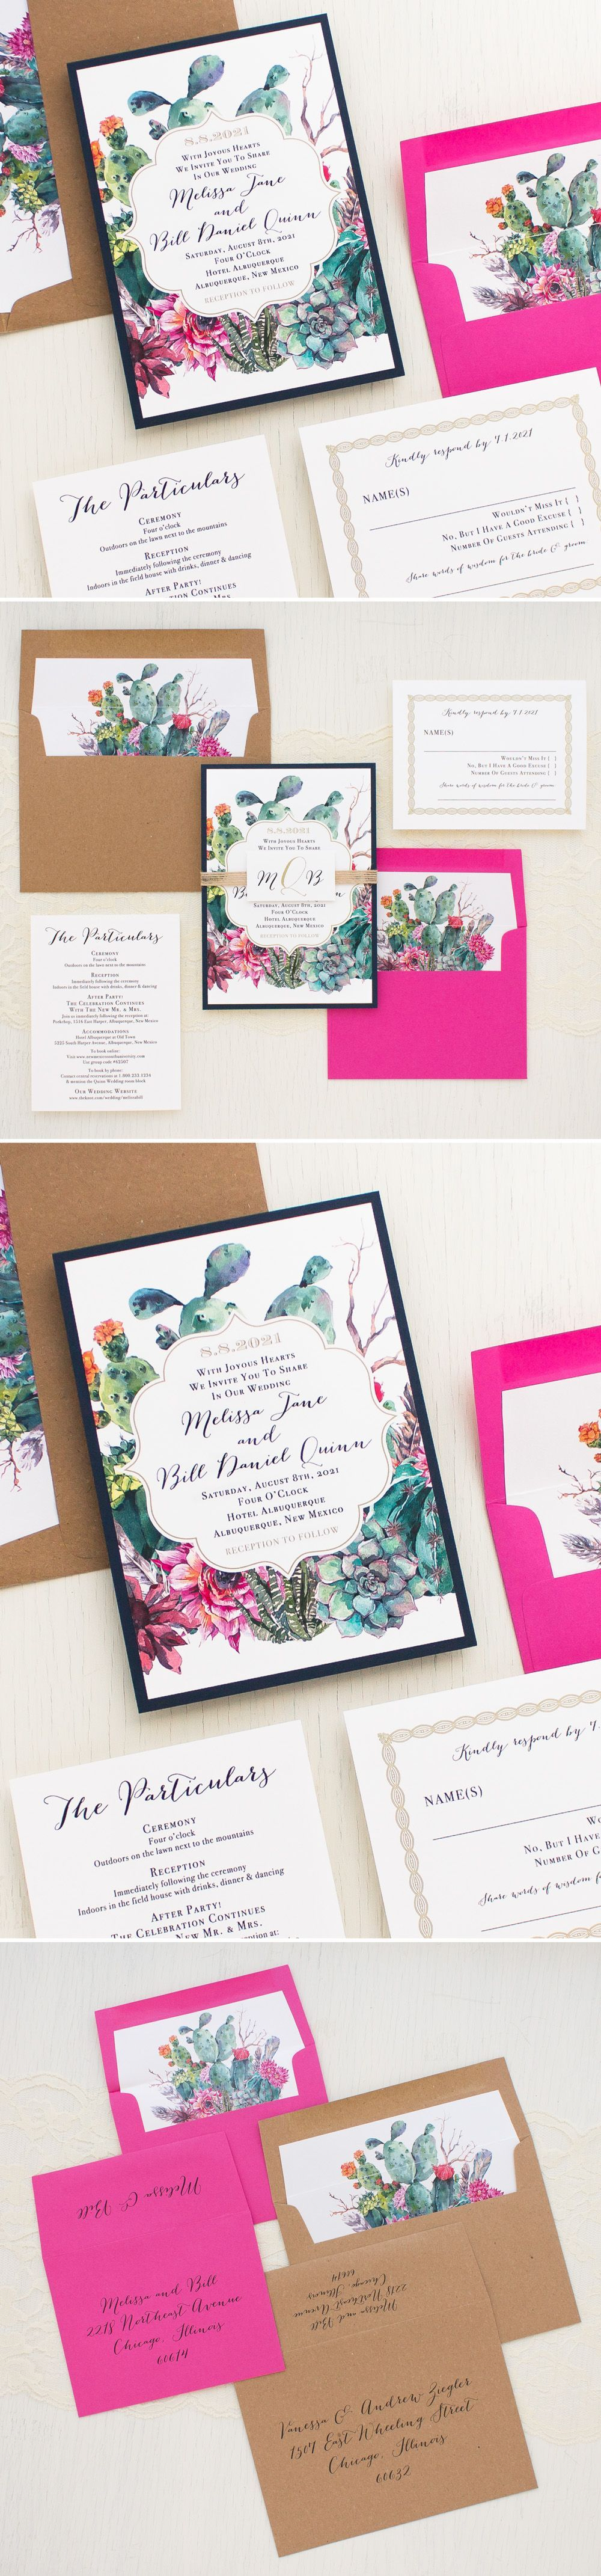 Cactus Inspired Wedding Invites With Bold Blooms, Watercolor ...